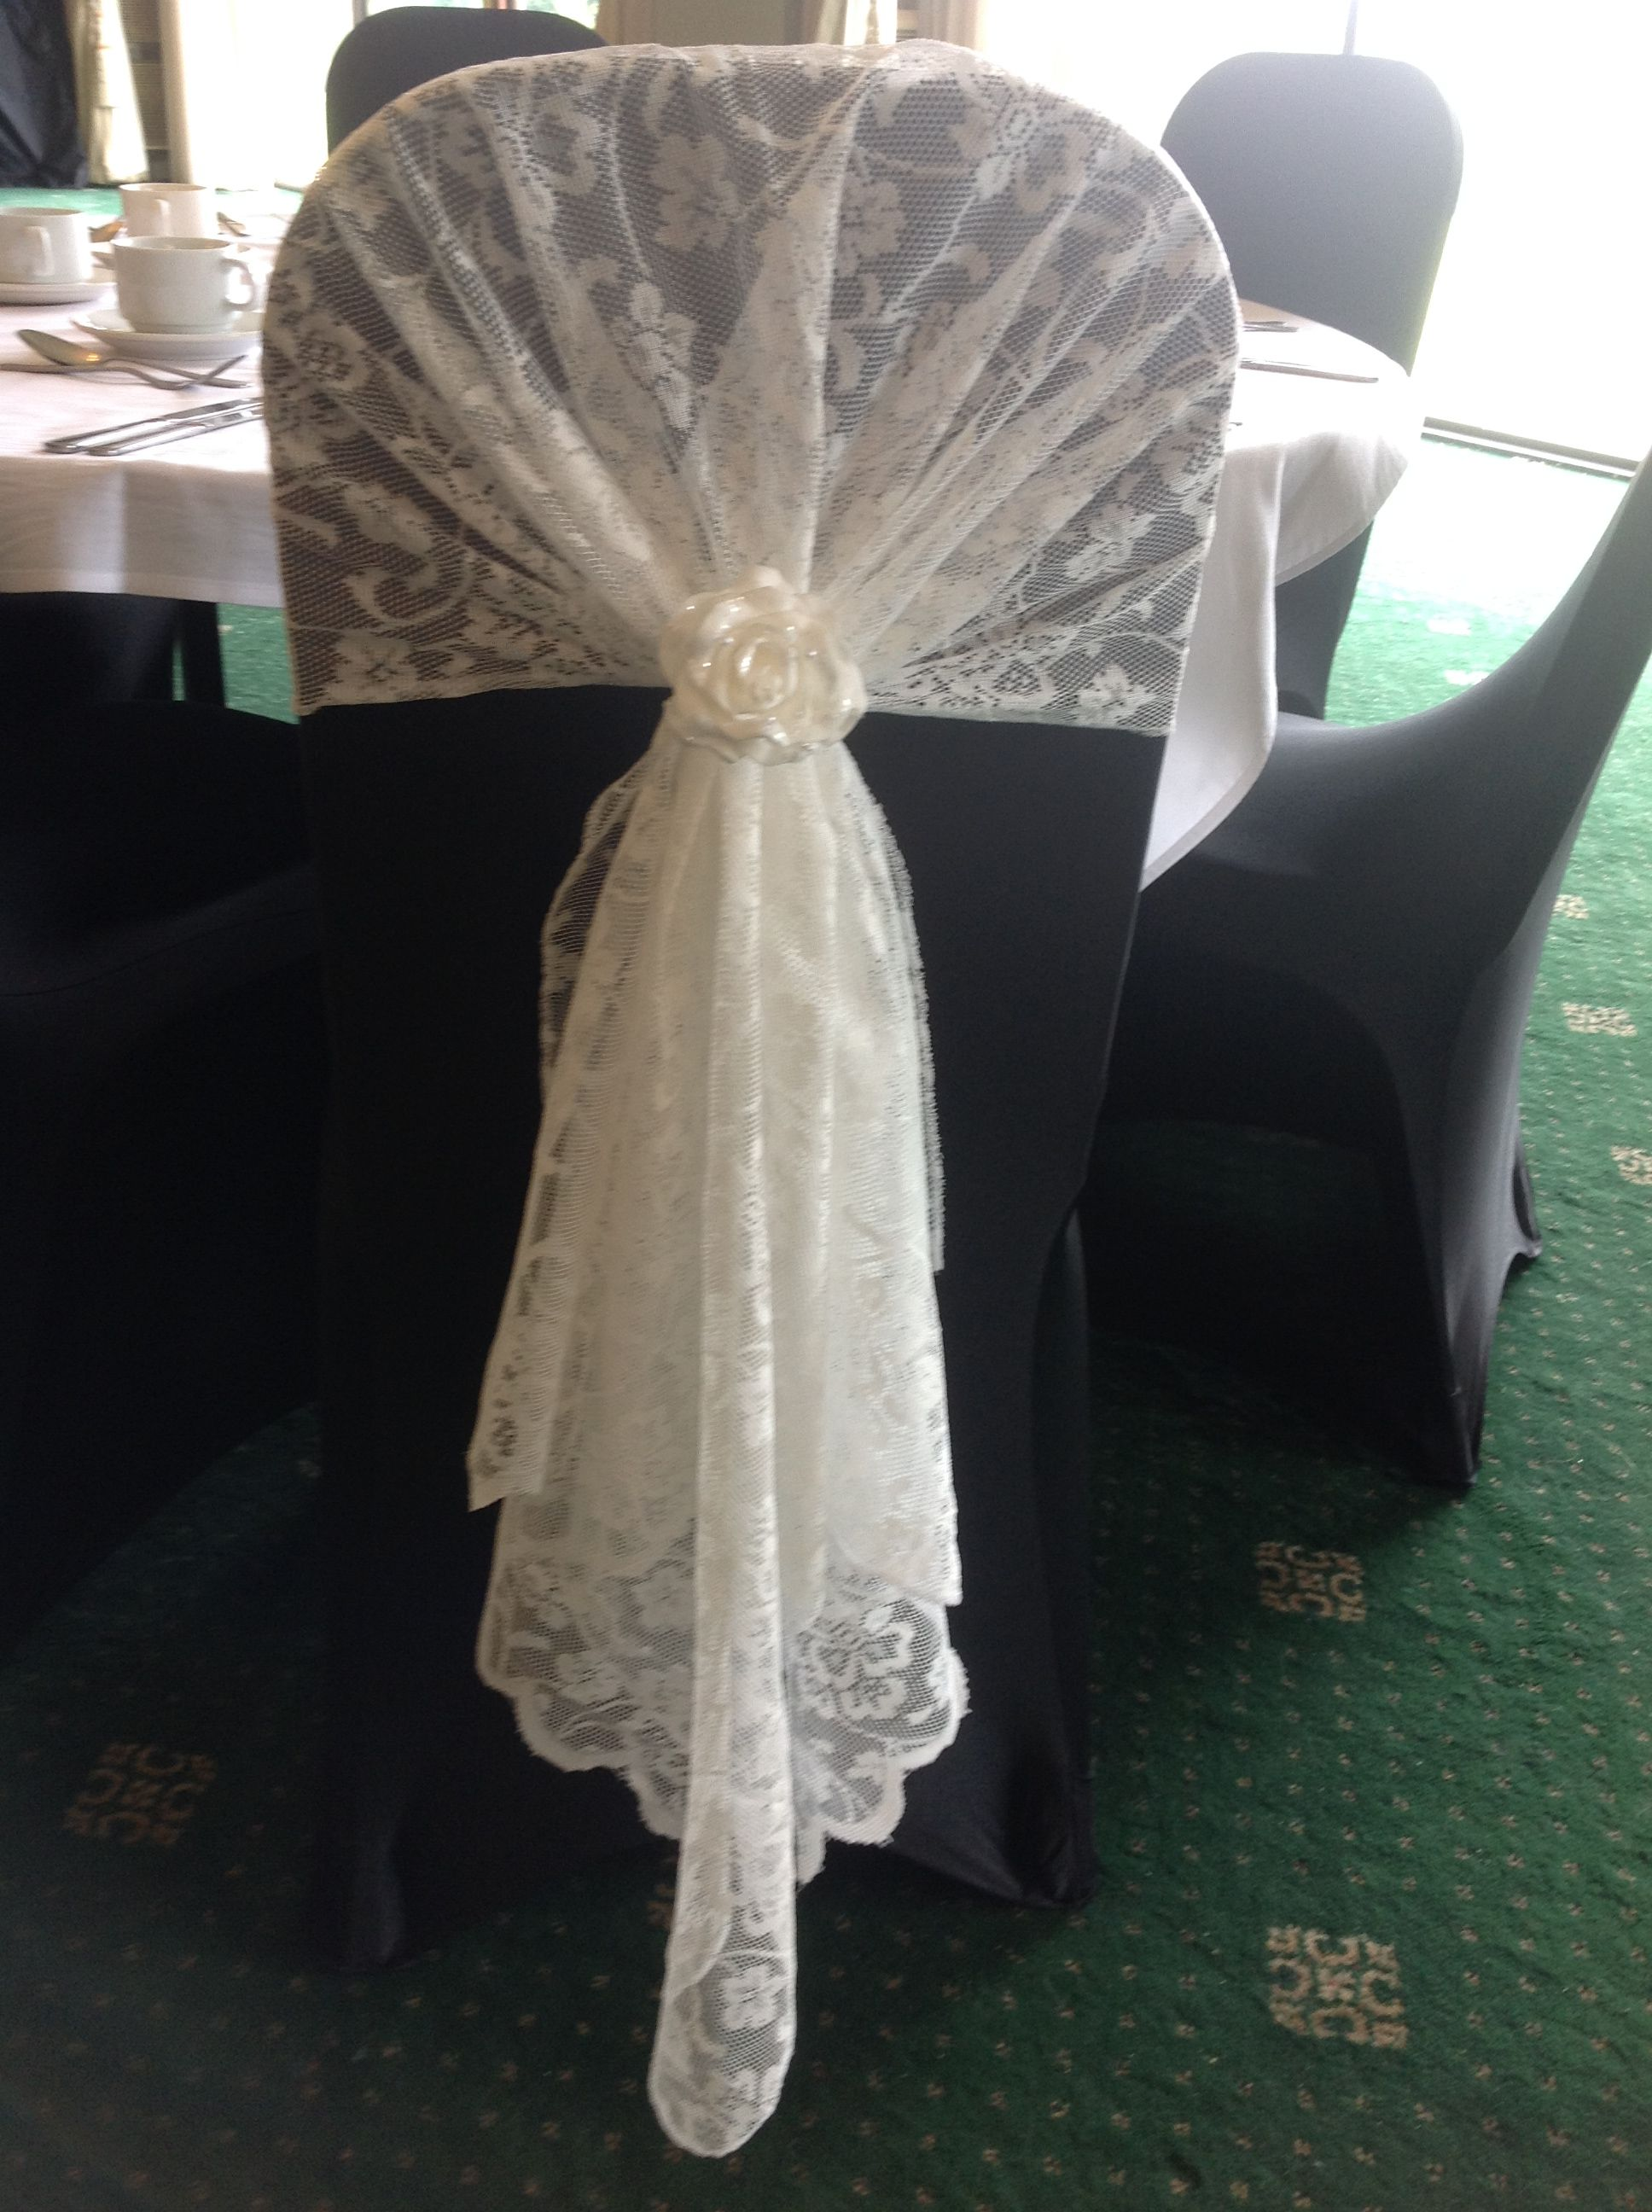 Chair Cover Hire Tamworth Drink Holder Gorgeous Vintage Lace Hood With Rose Detail Shows Up Beautifully On Our Black Covers Available To From Make It Special Events Atherstone